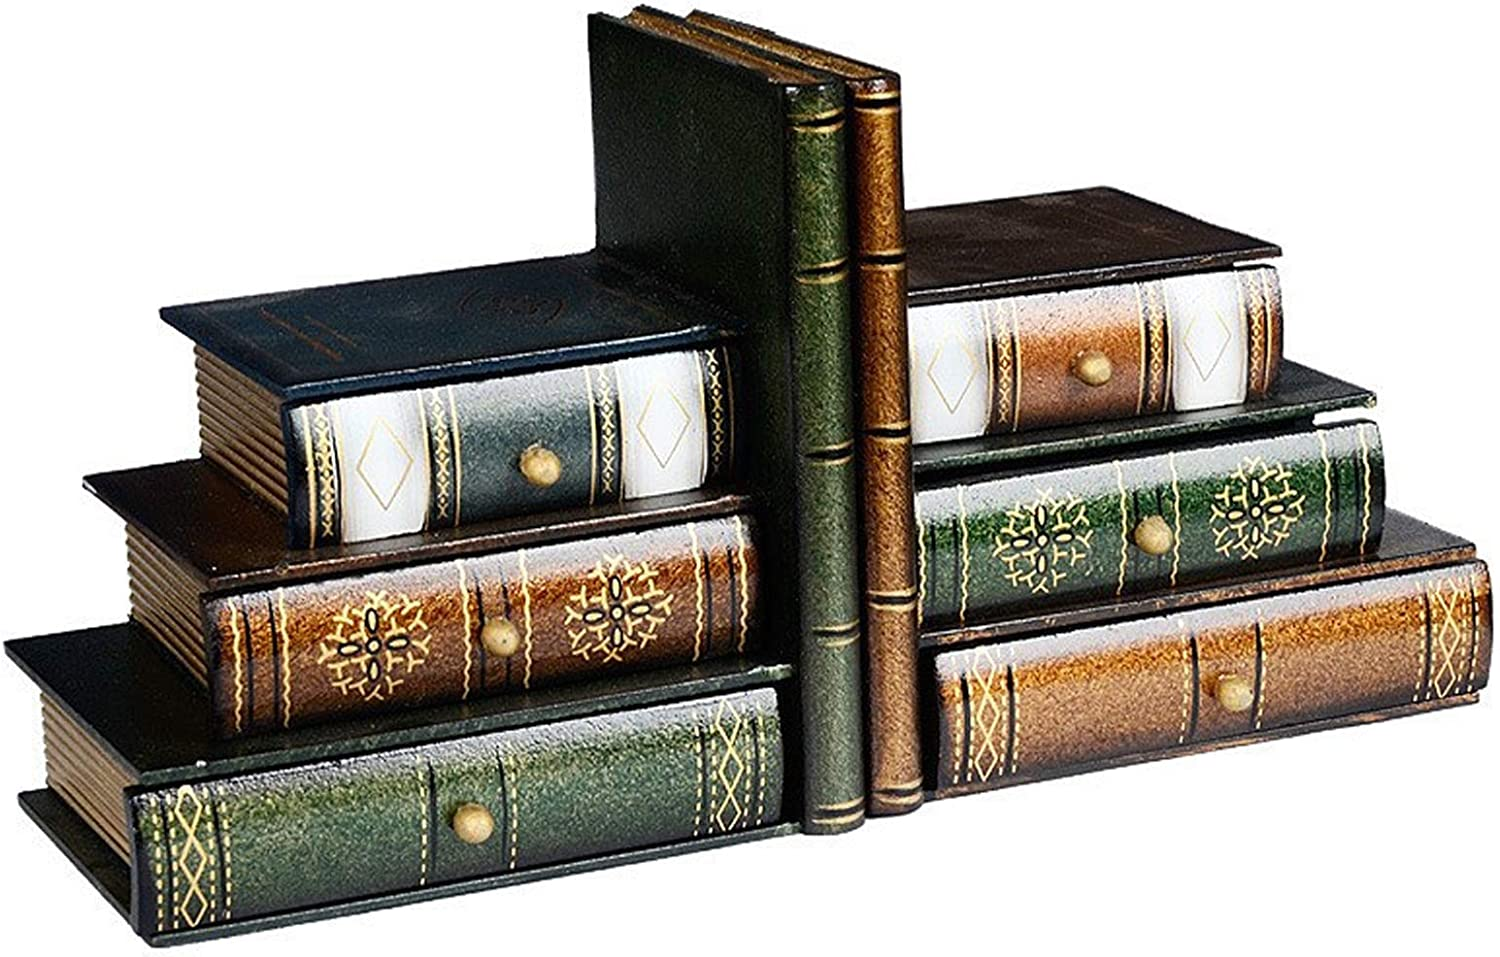 DSWHM Decorative Limited price sale Book Ends Stacked Desktop O Wood Bookends Books High material